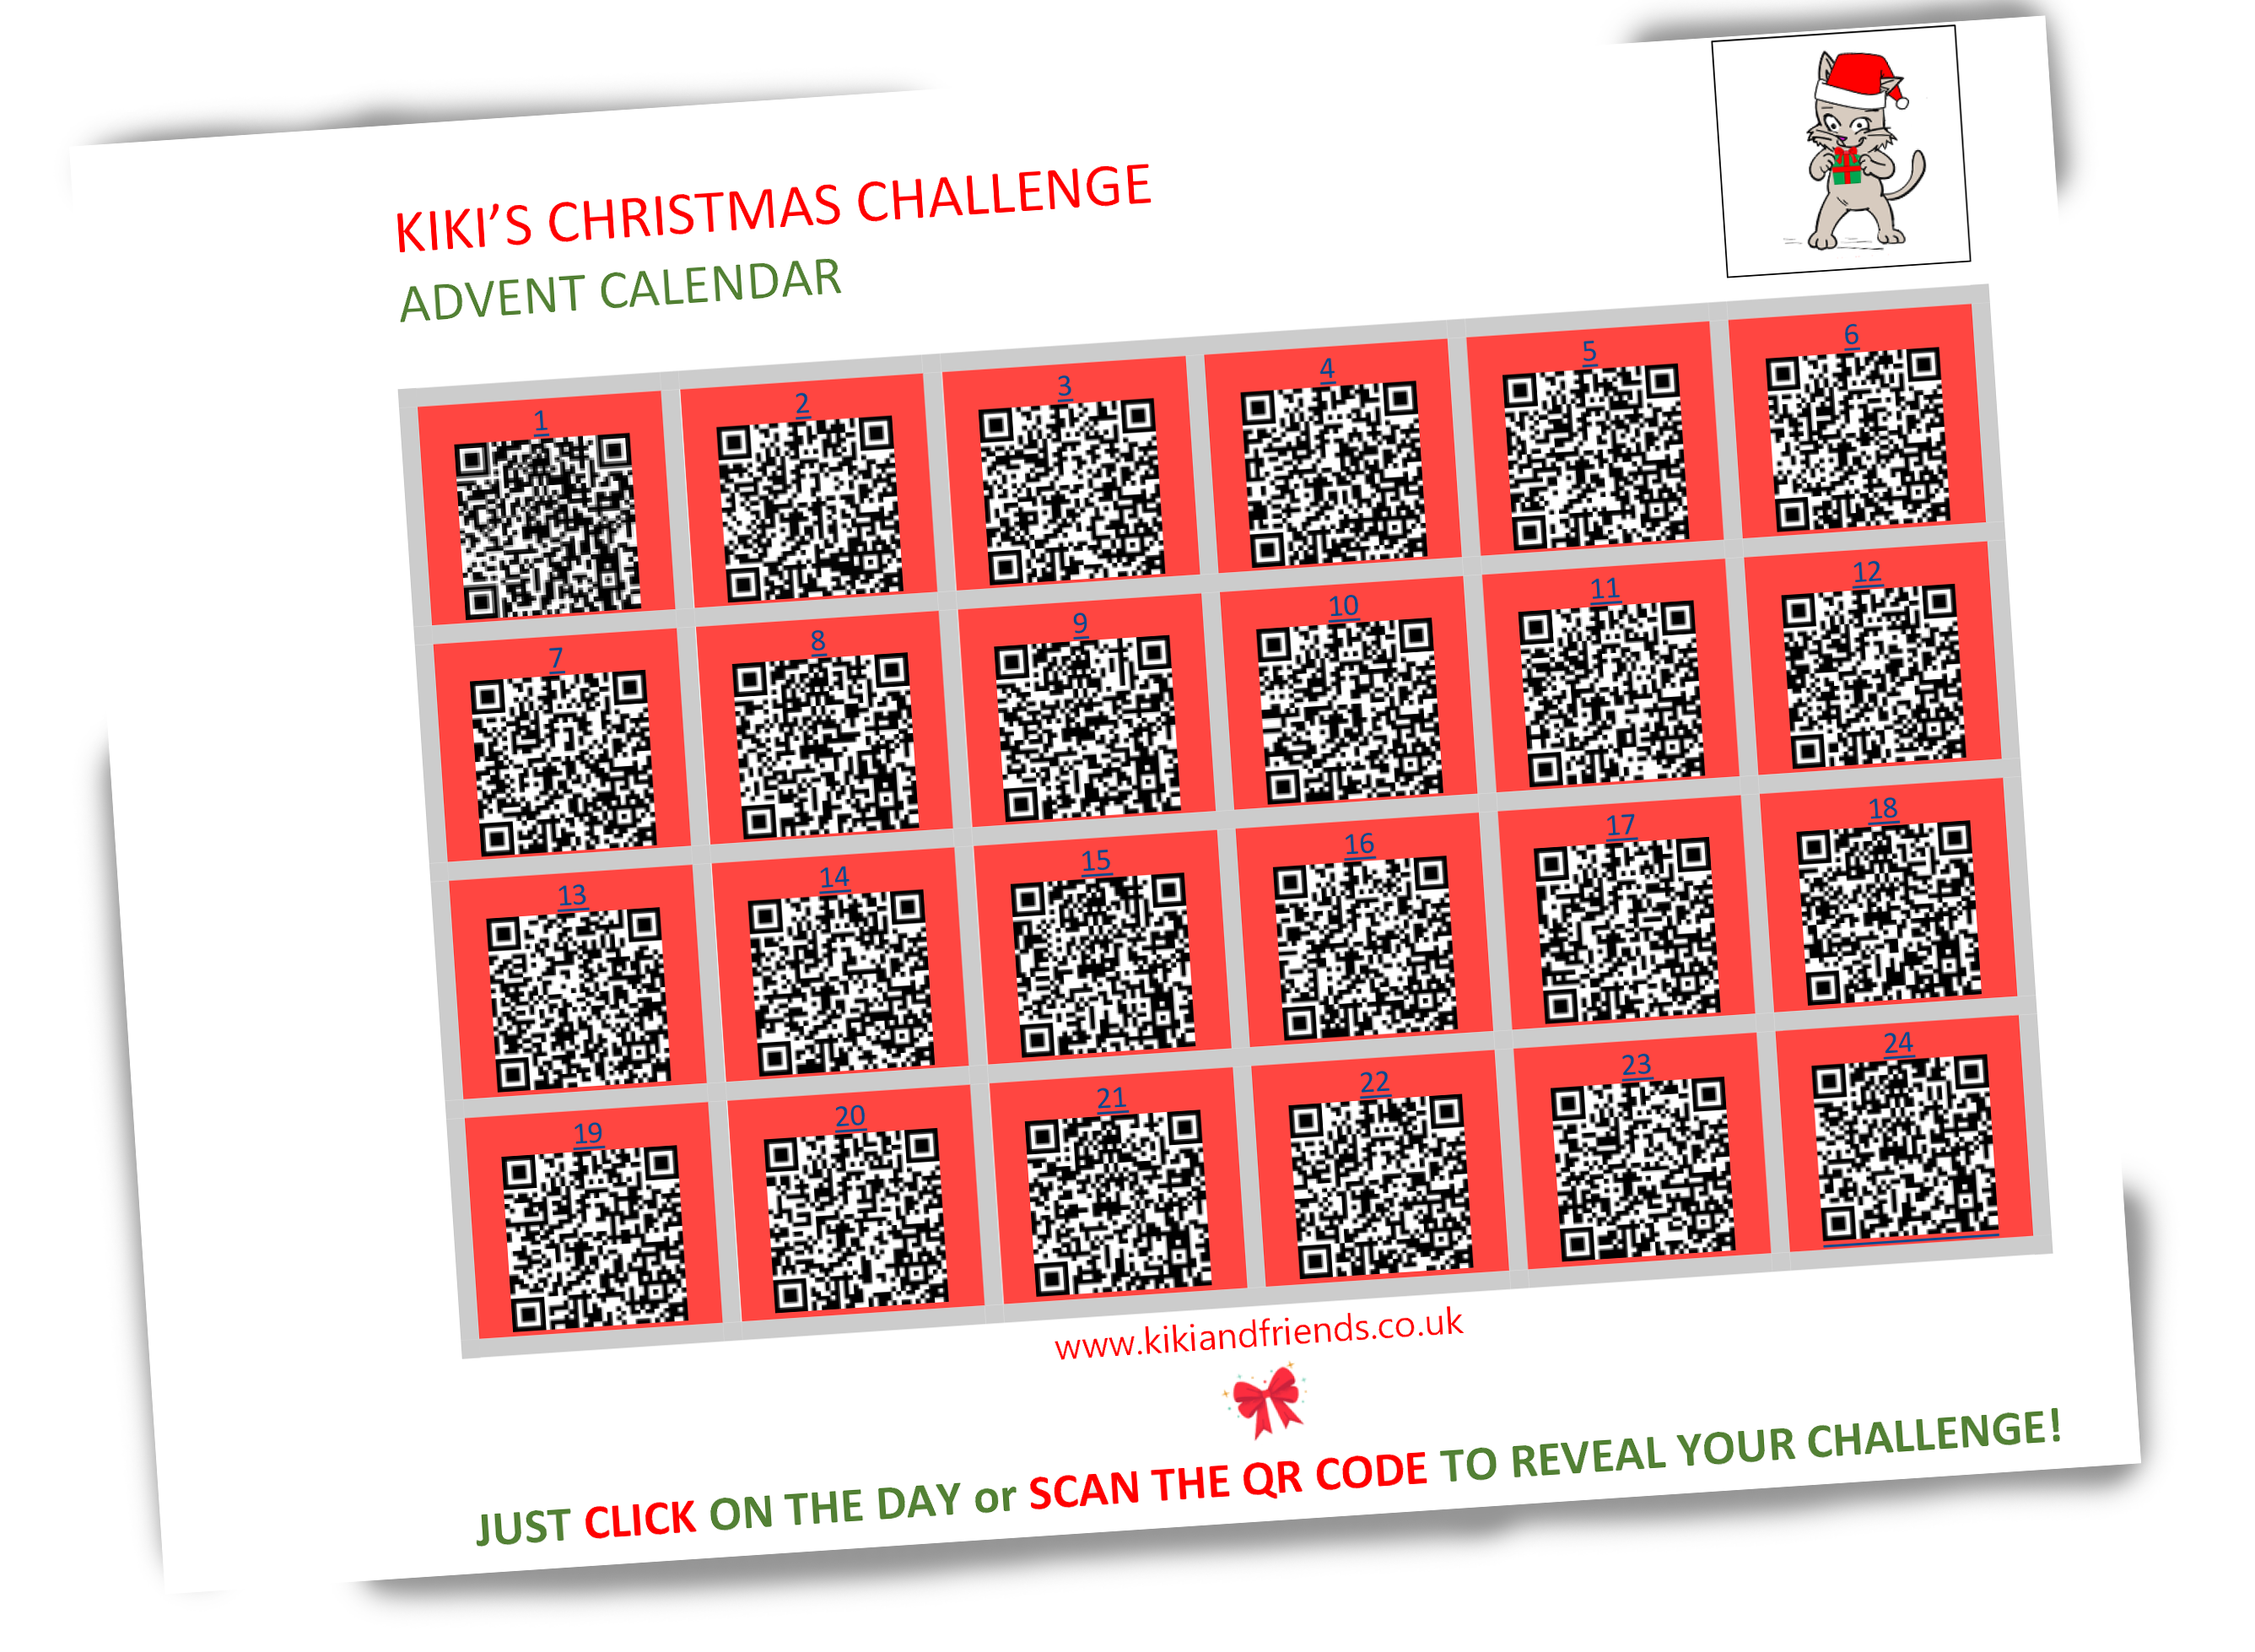 Kiki's FREE Christmas Calendar with QR Codes. Just scan to open up your window of surprise. Definitely more fun than chocolates. And yes, it's free. A little treat after such a strange year.